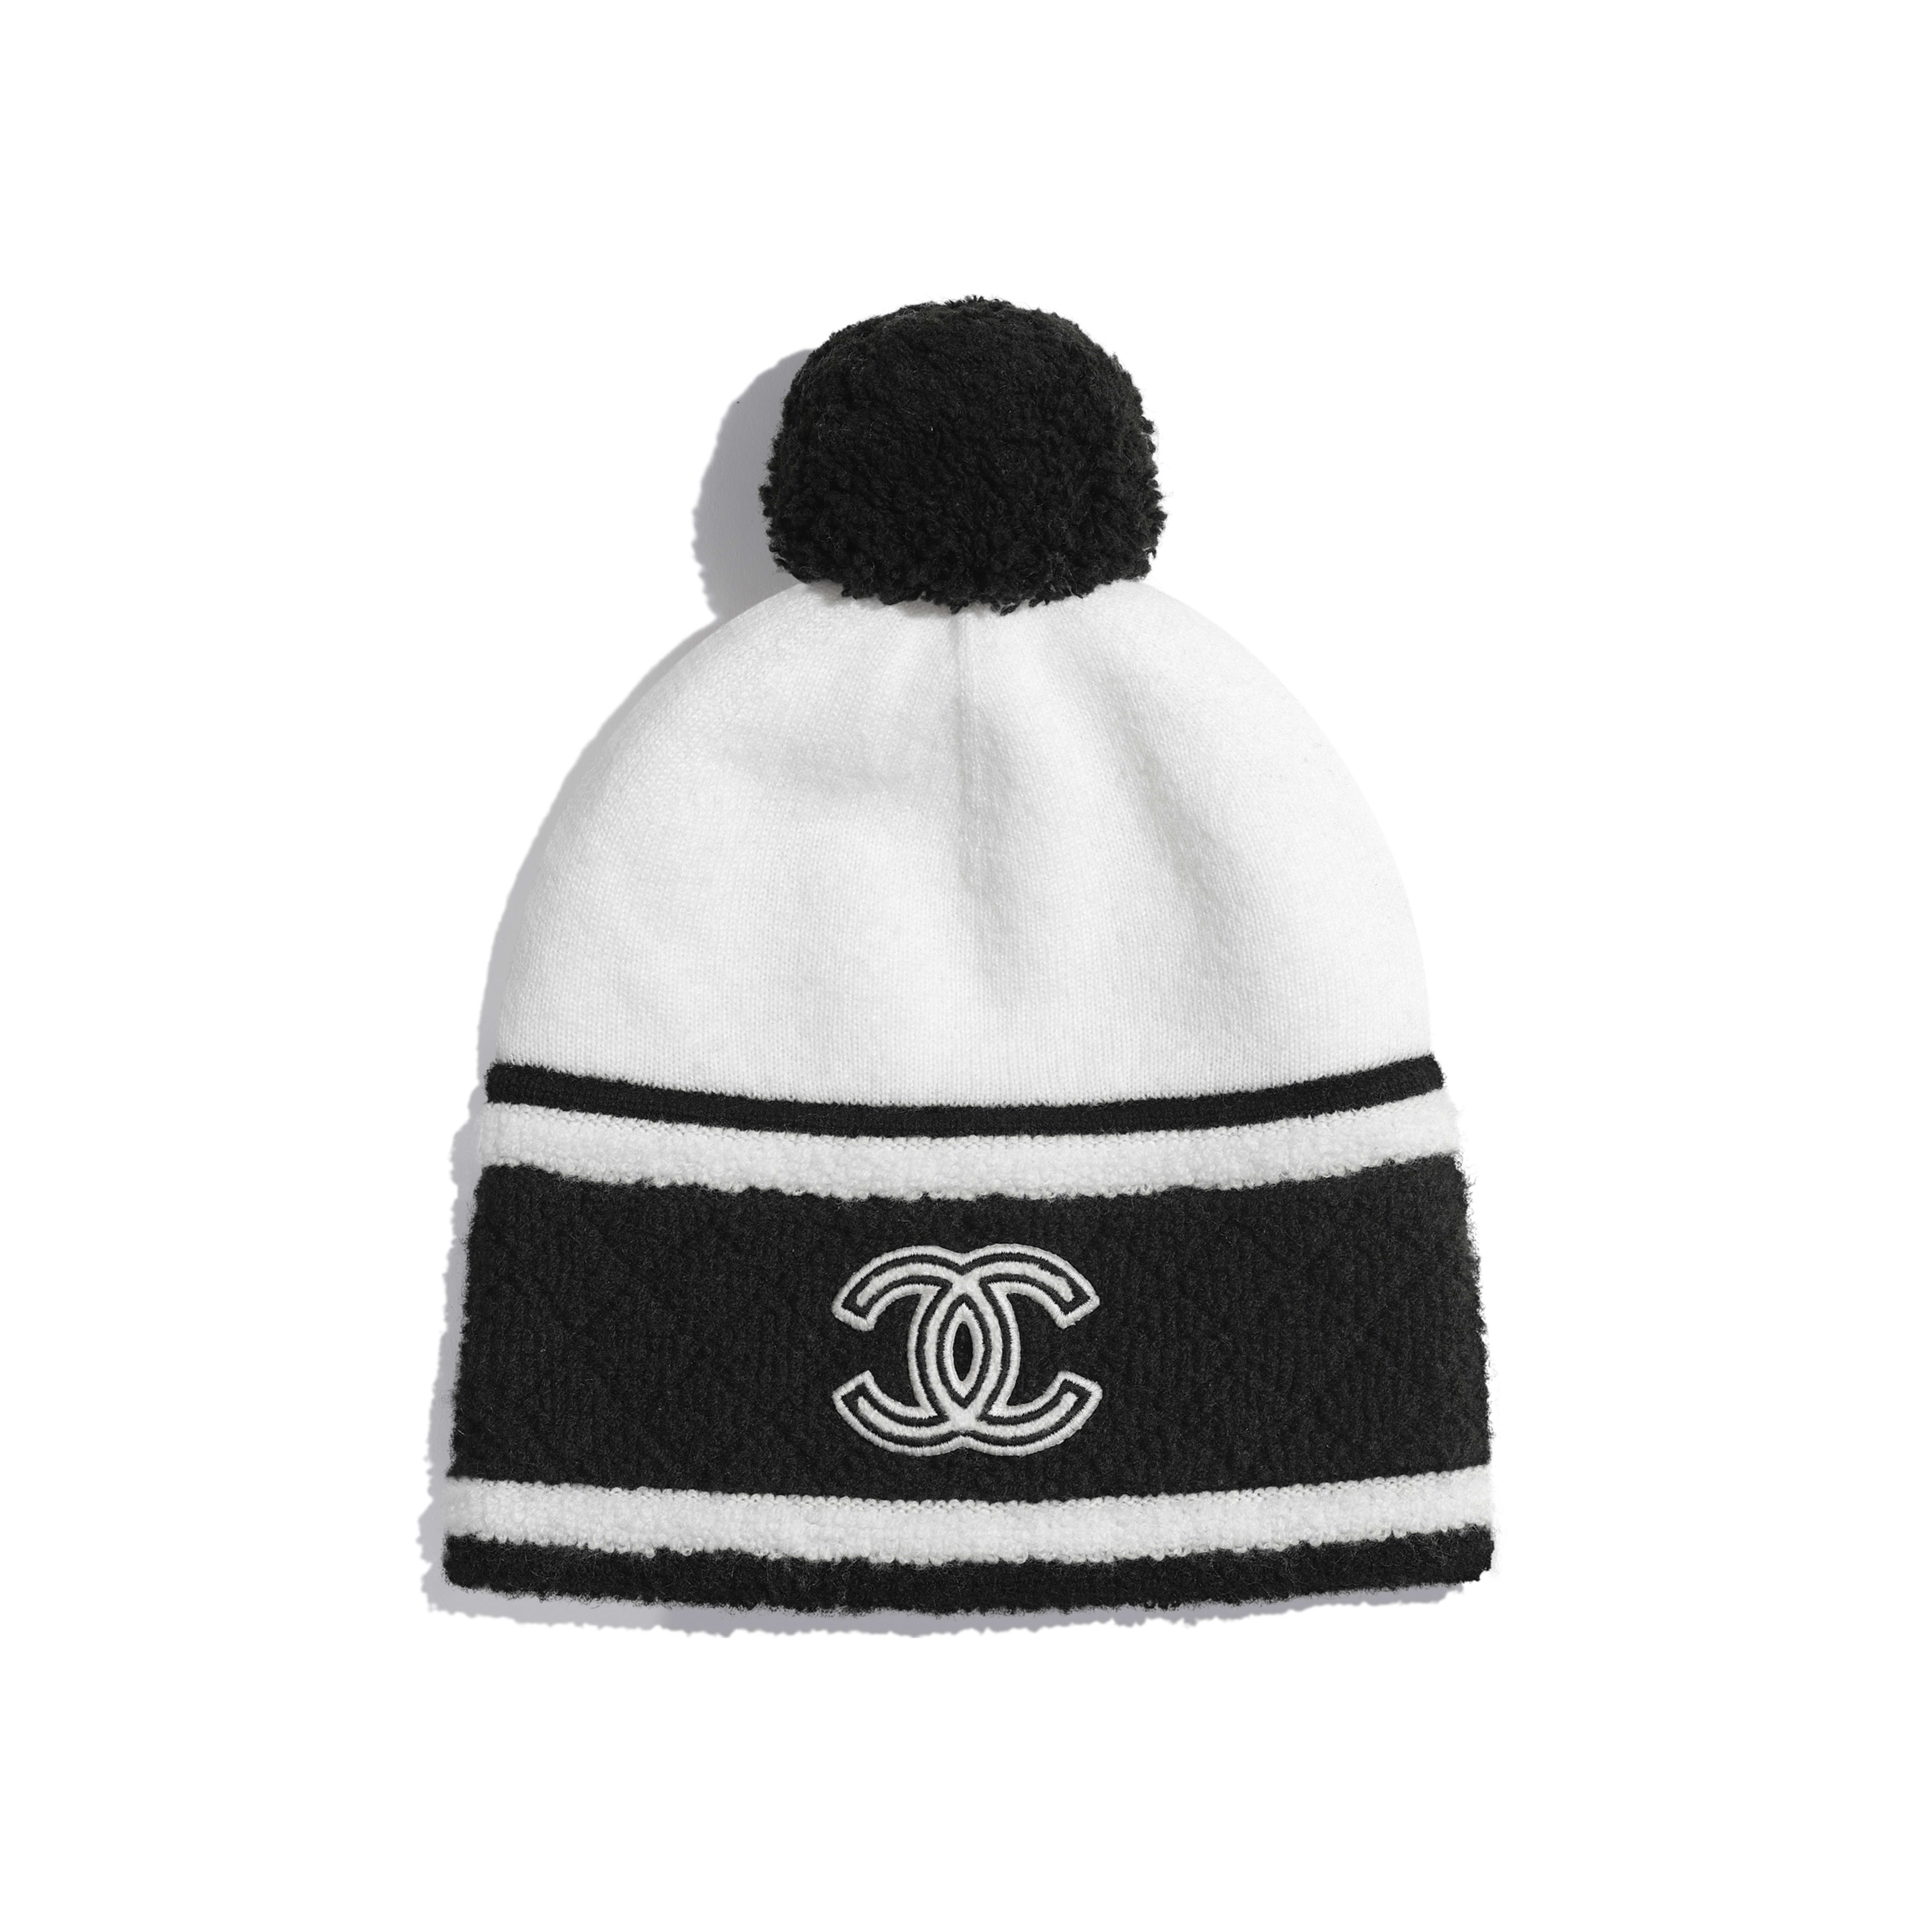 Beanie - White & Black - Cashmere - Default view - see full sized version